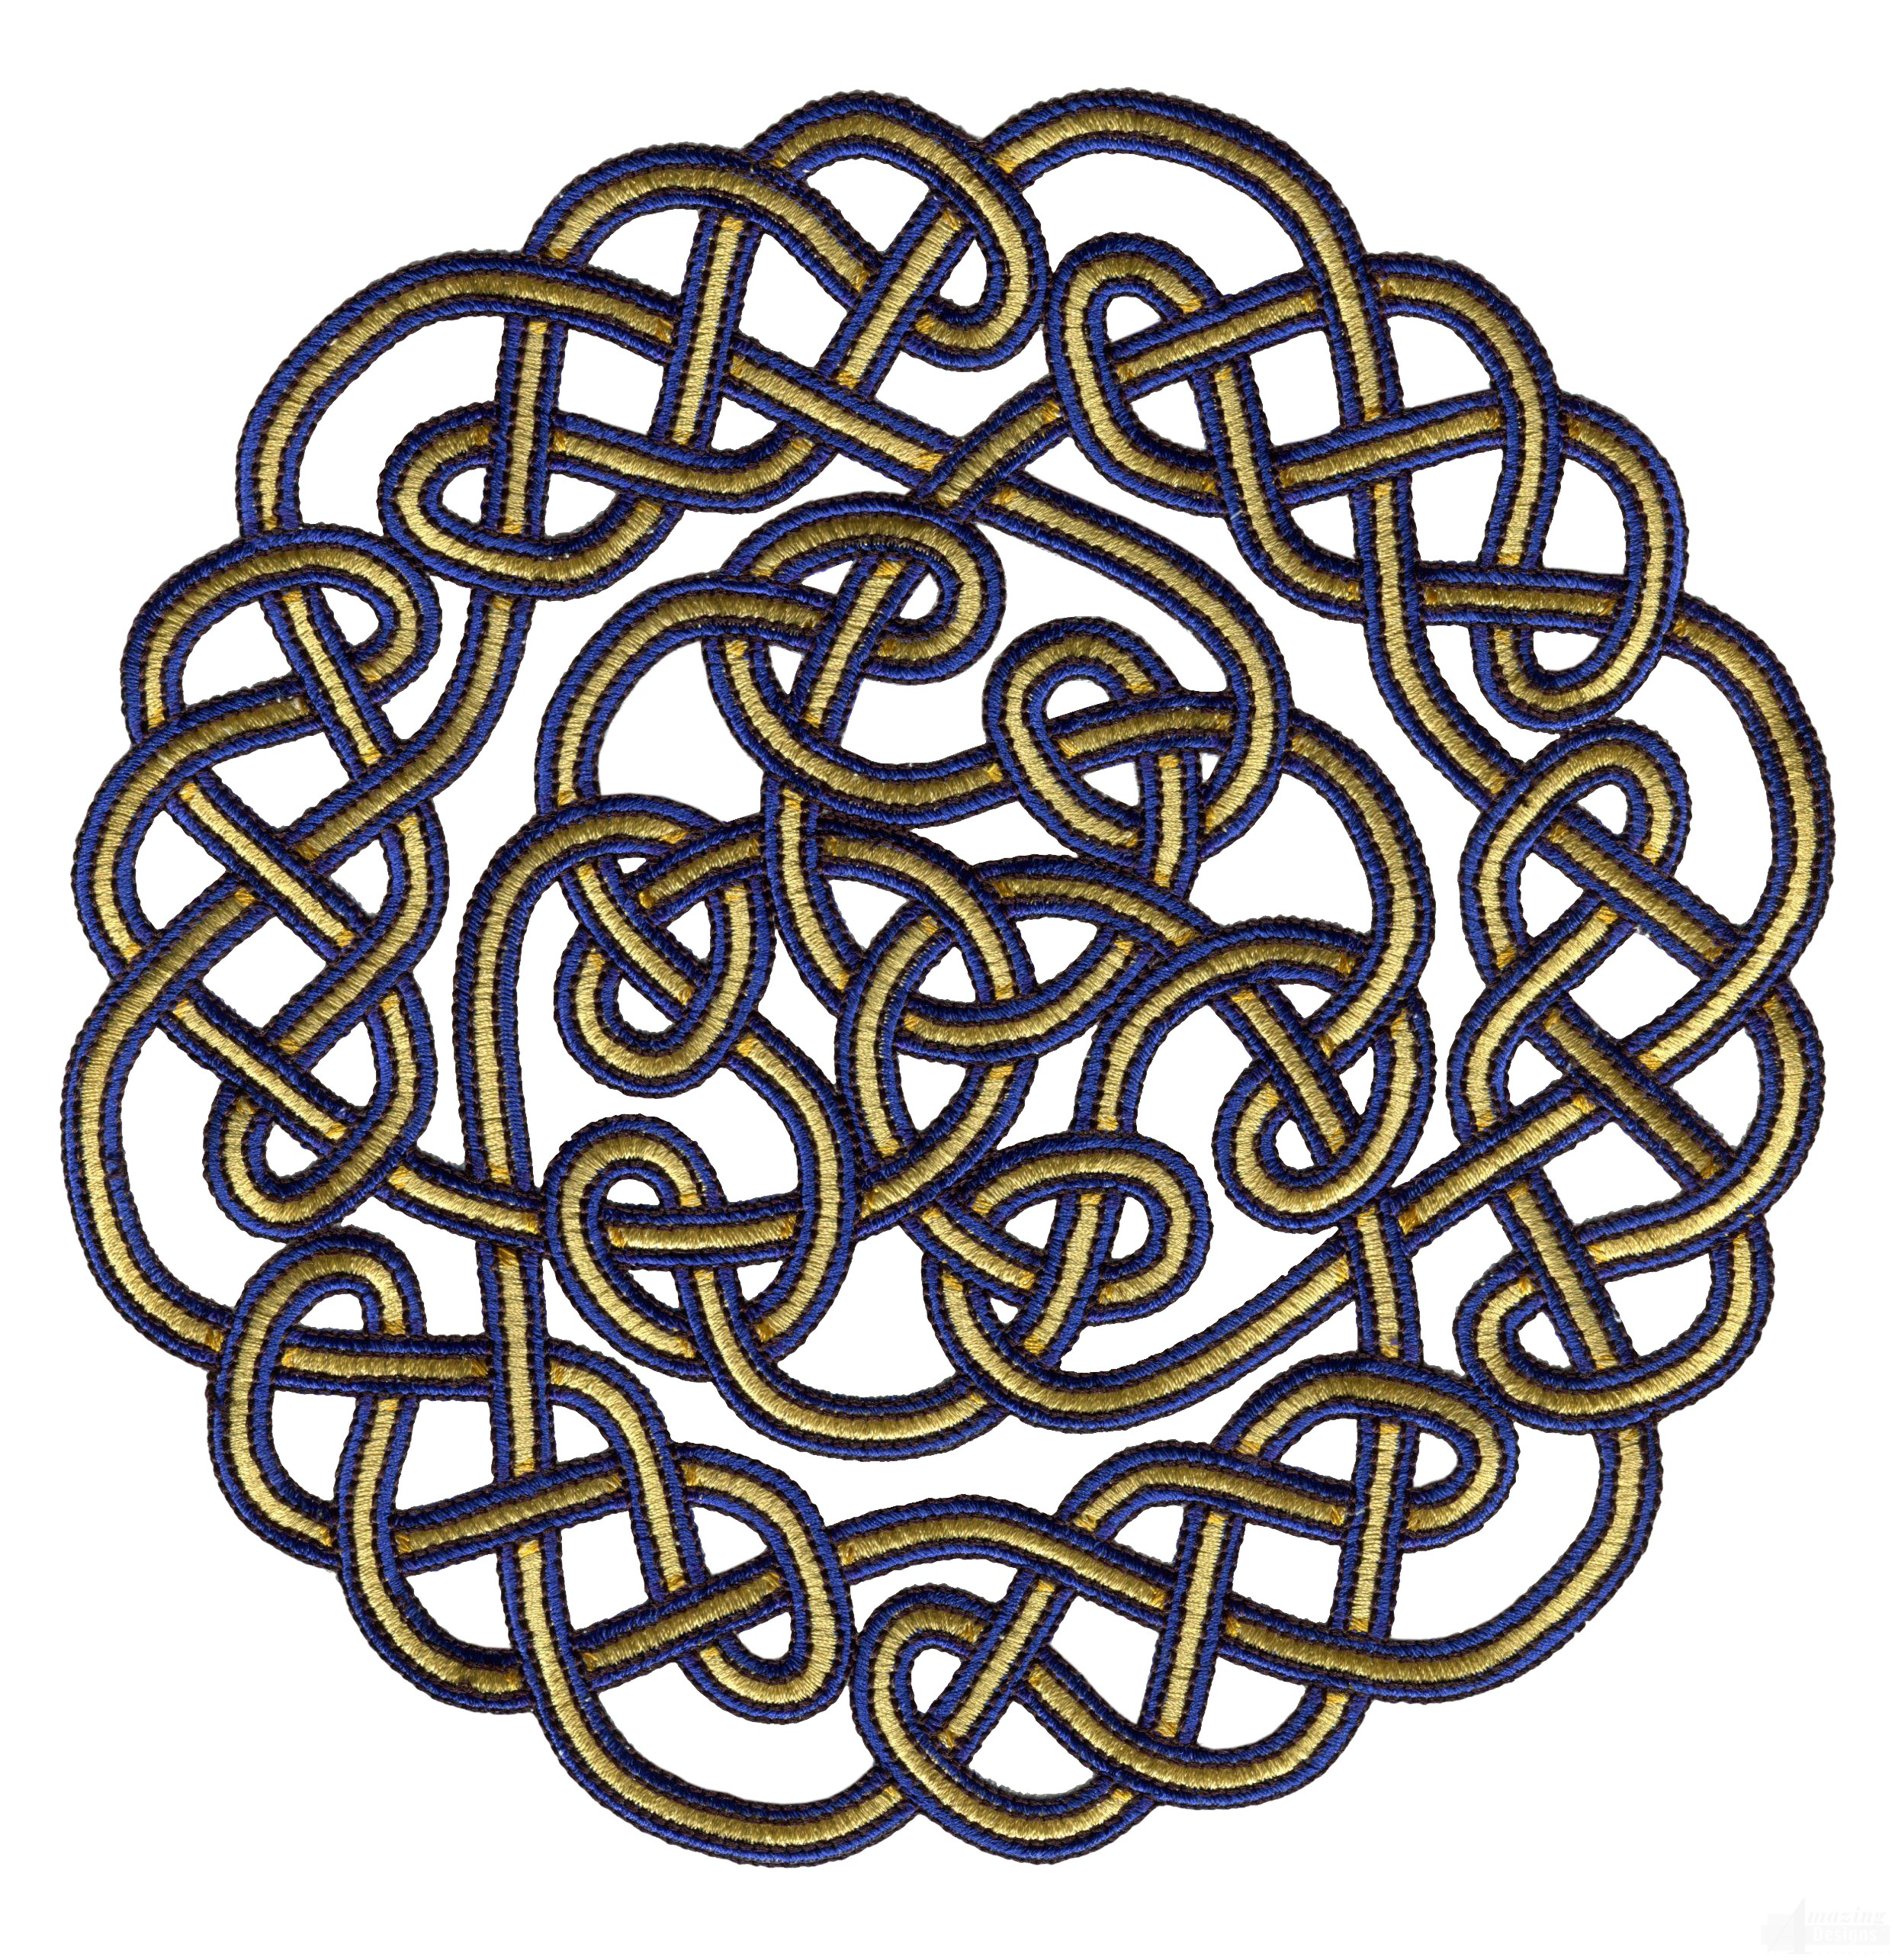 Circle knot embroidery design